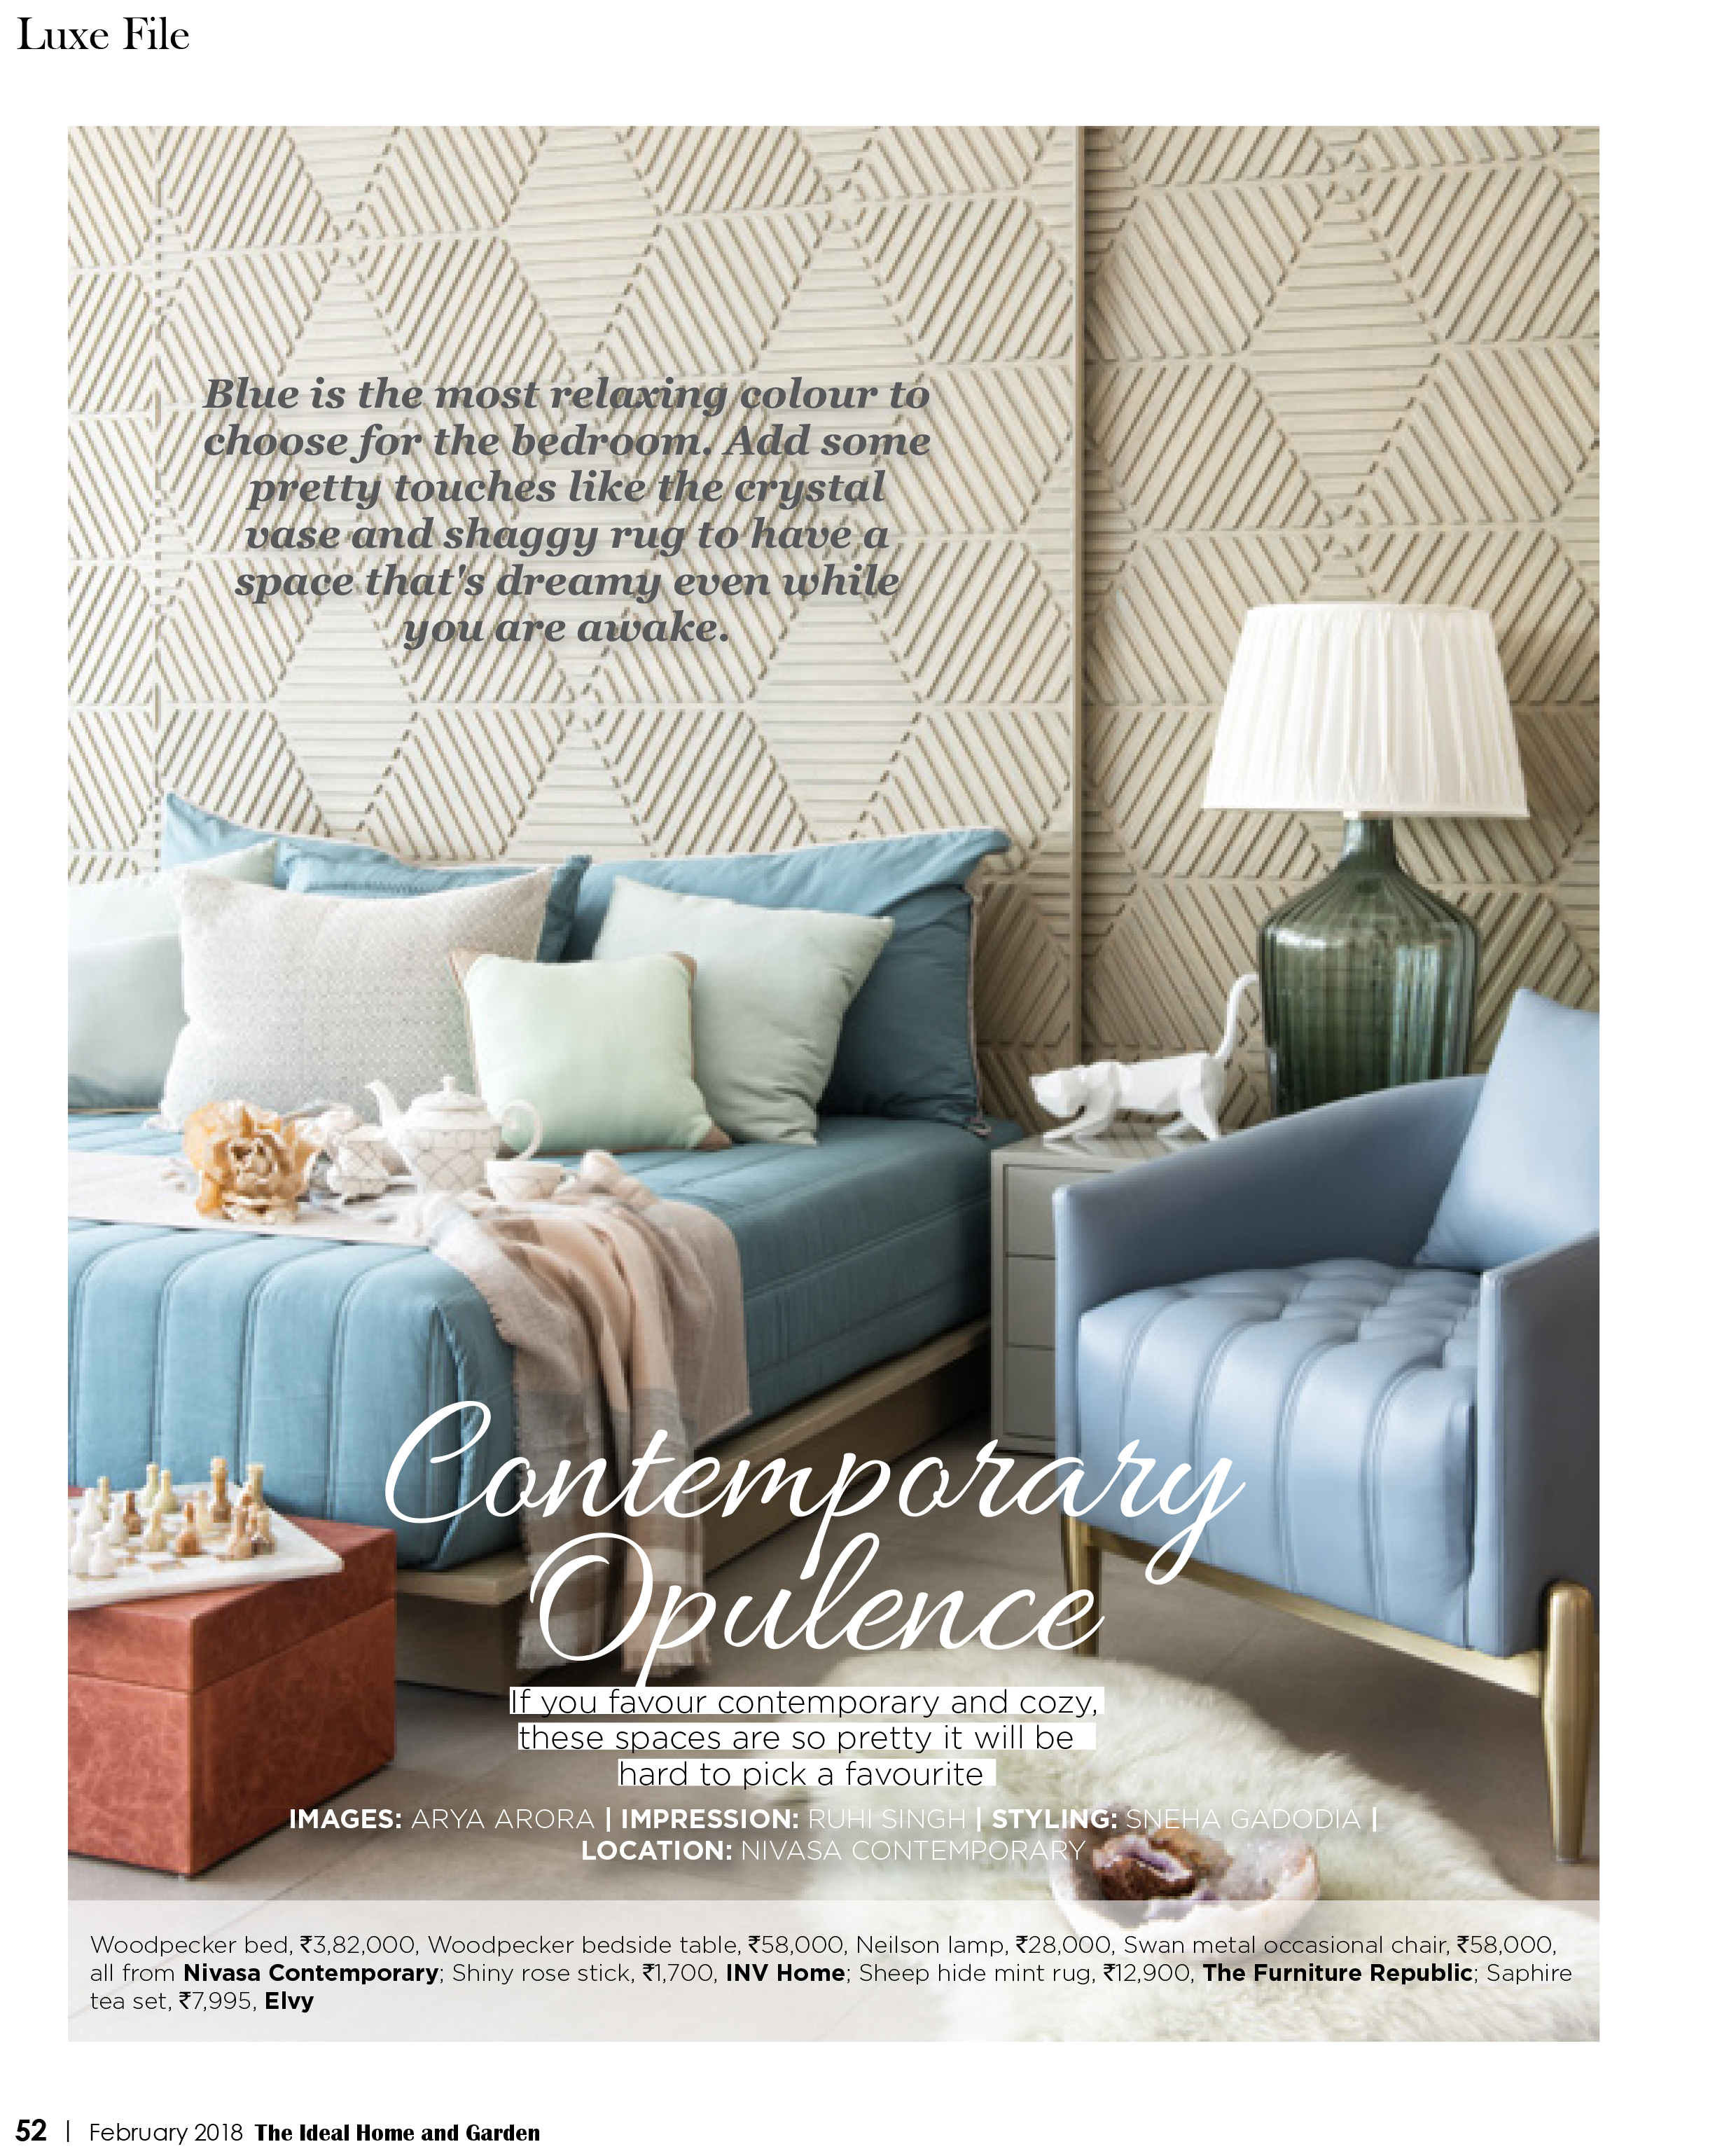 IDeal Homes - Contemporary Opulence